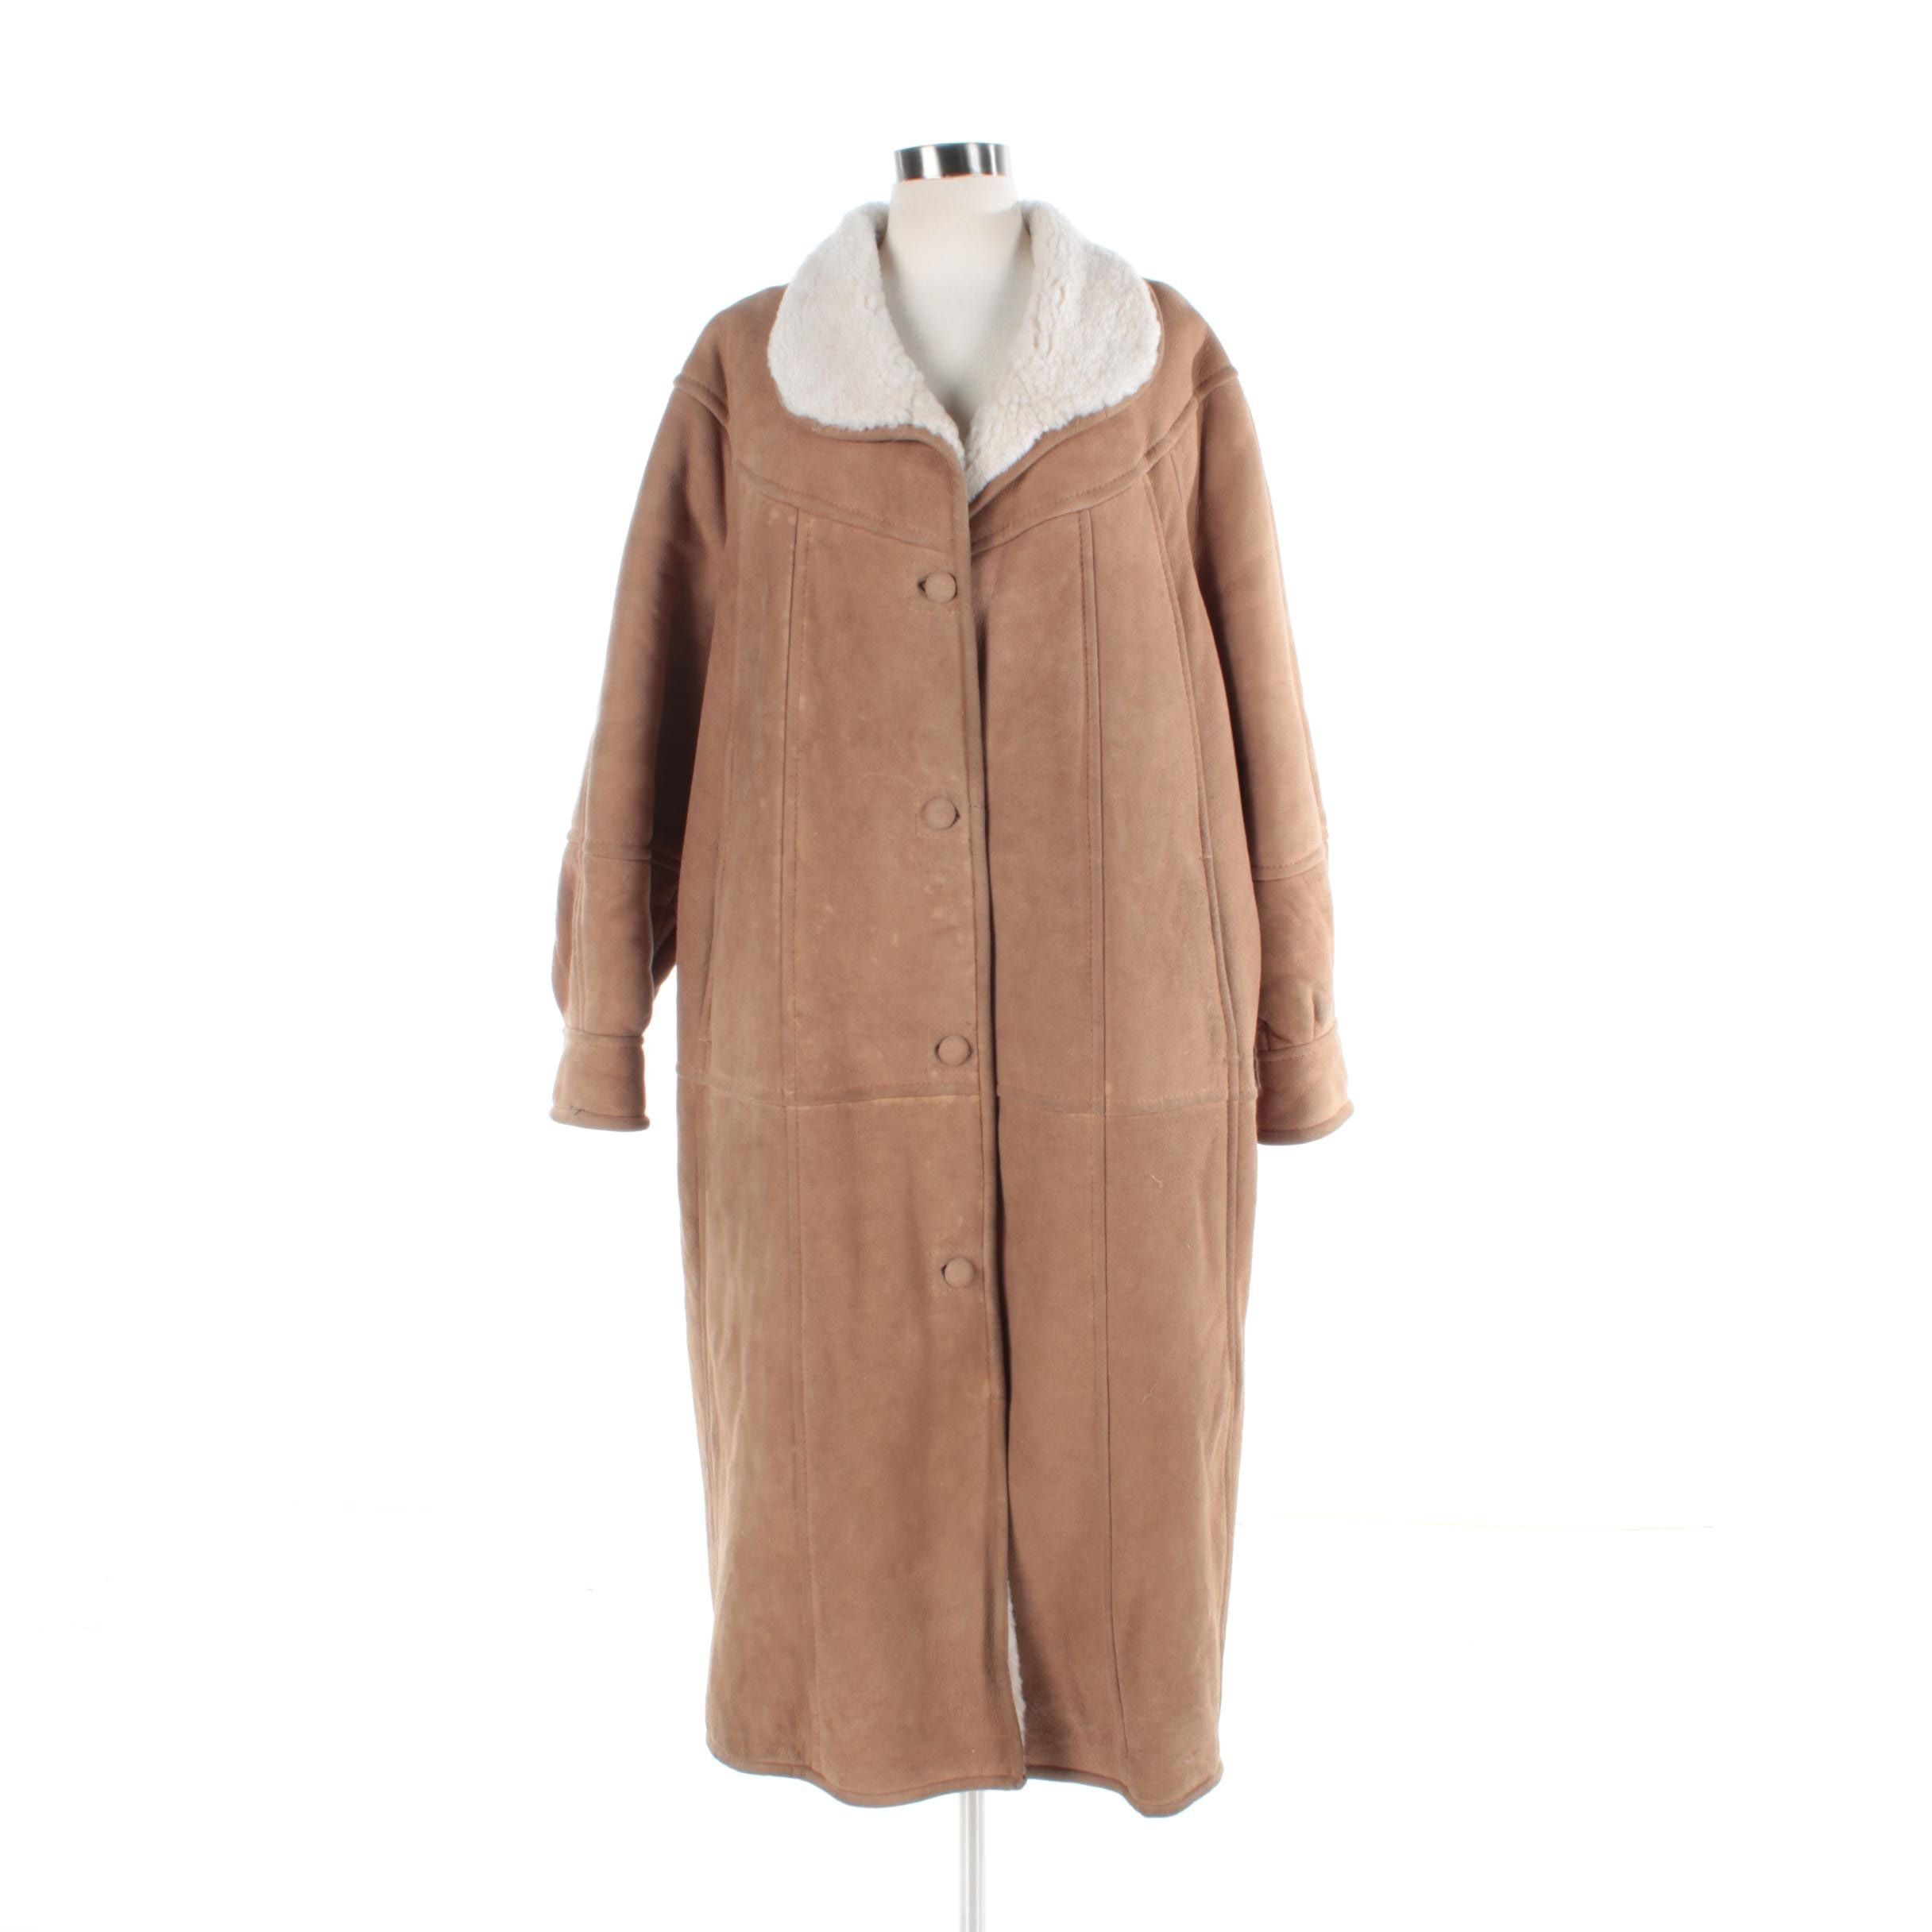 Women's Shearling Lined Suede Coat